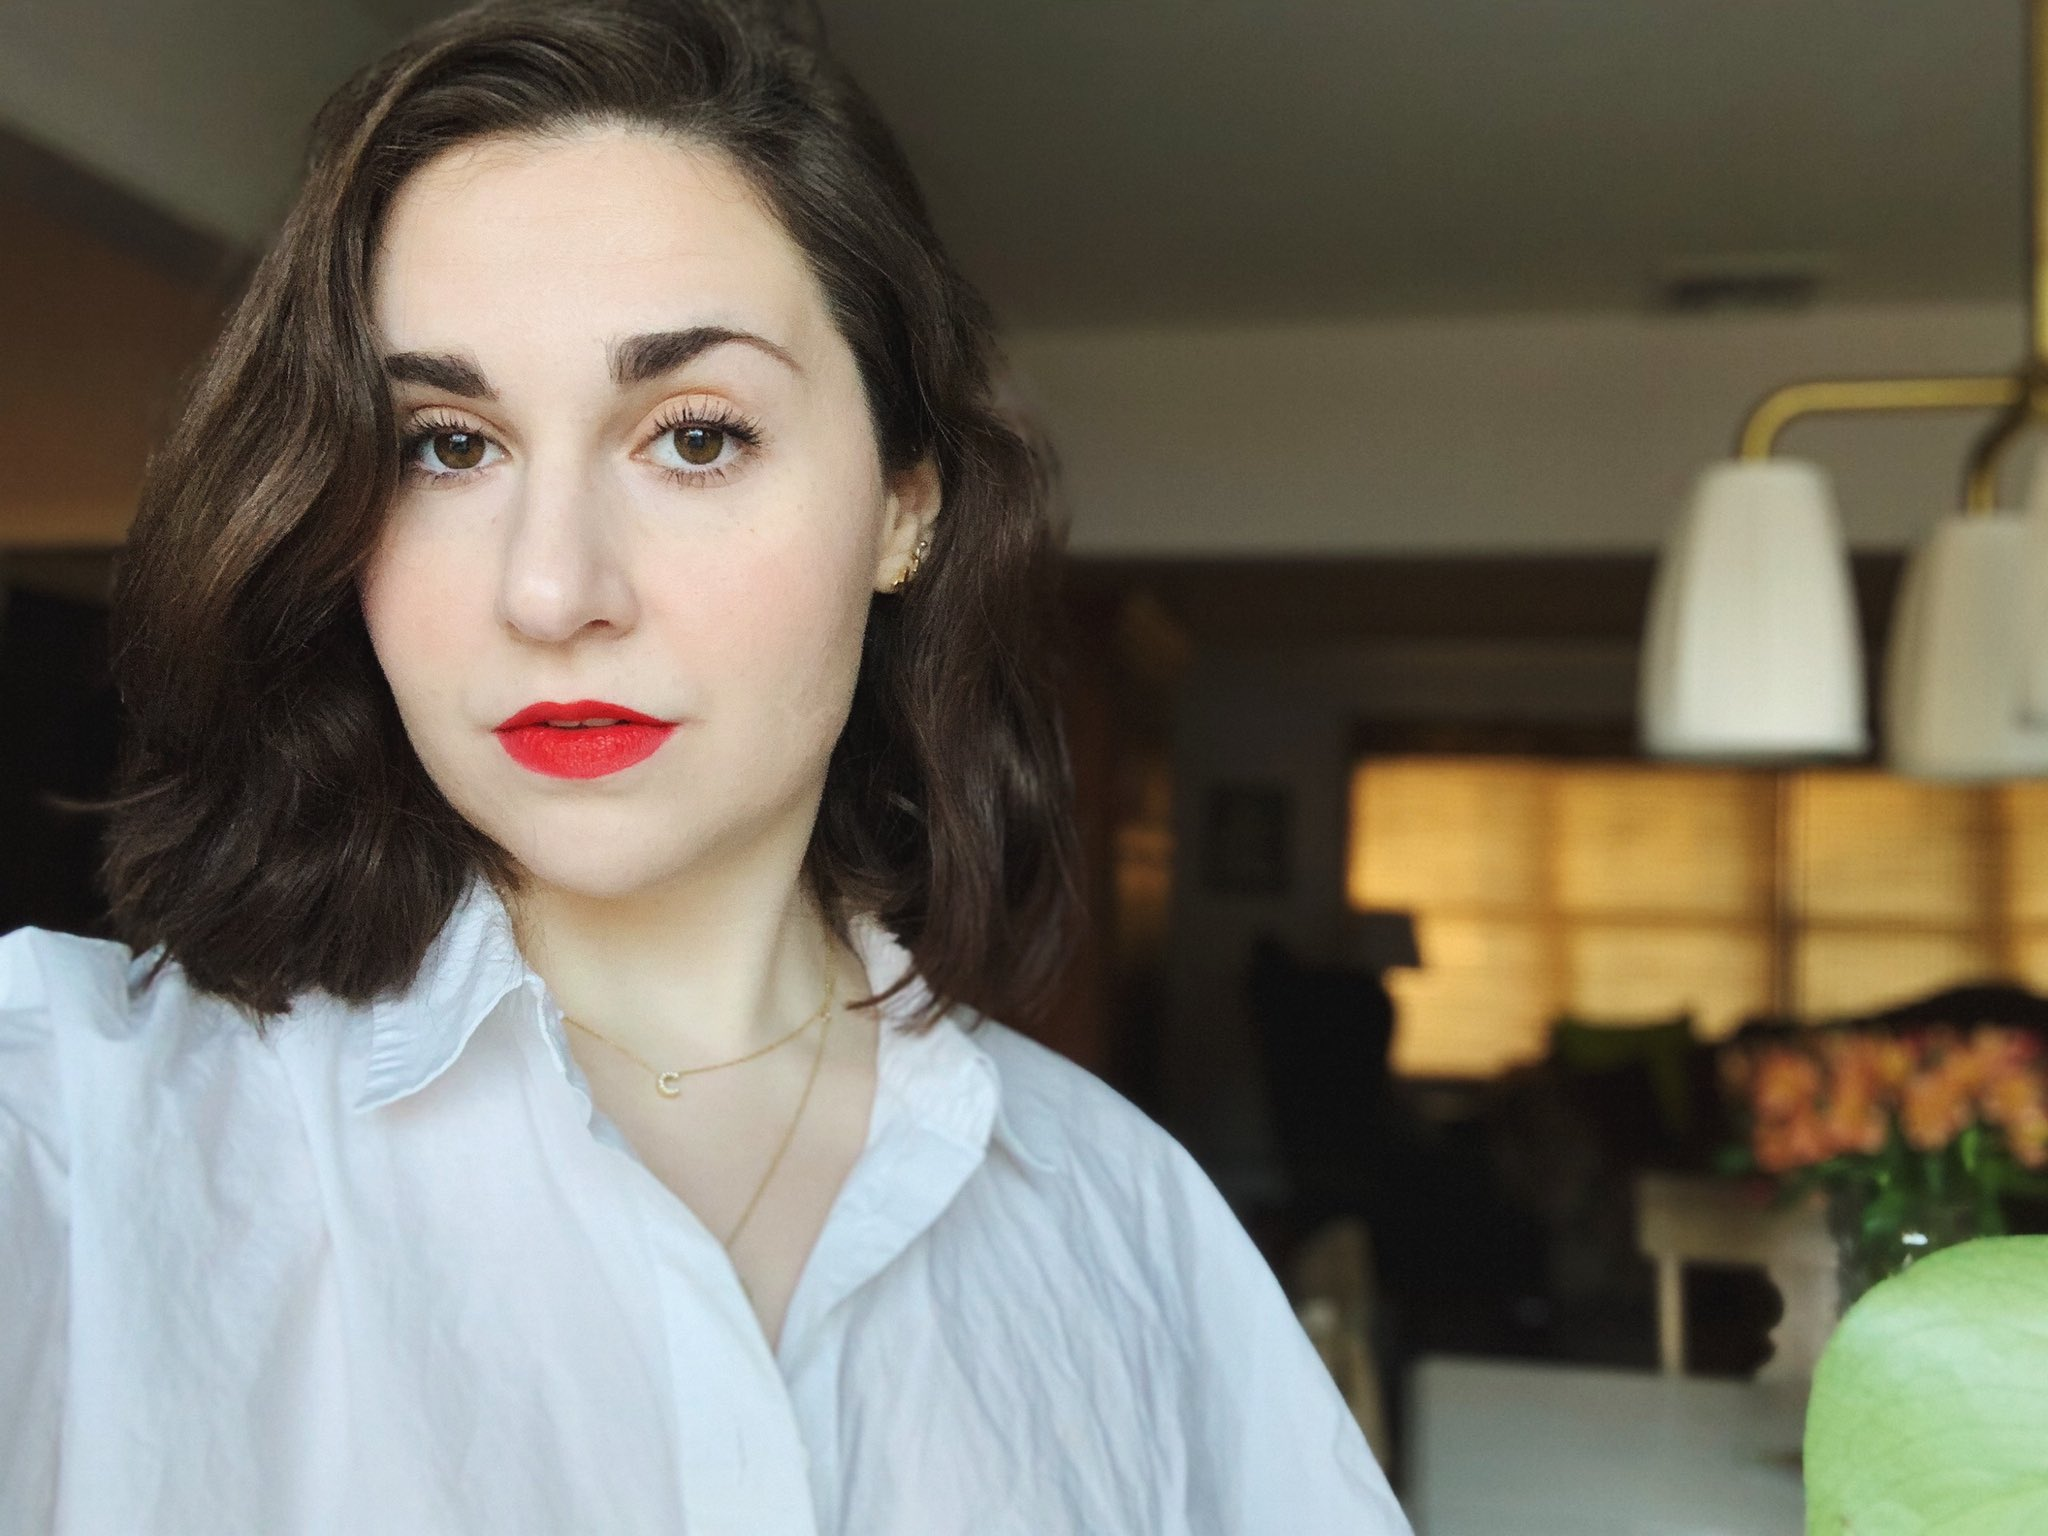 Woman with dark wavy hair and red lipstick looking at the camera